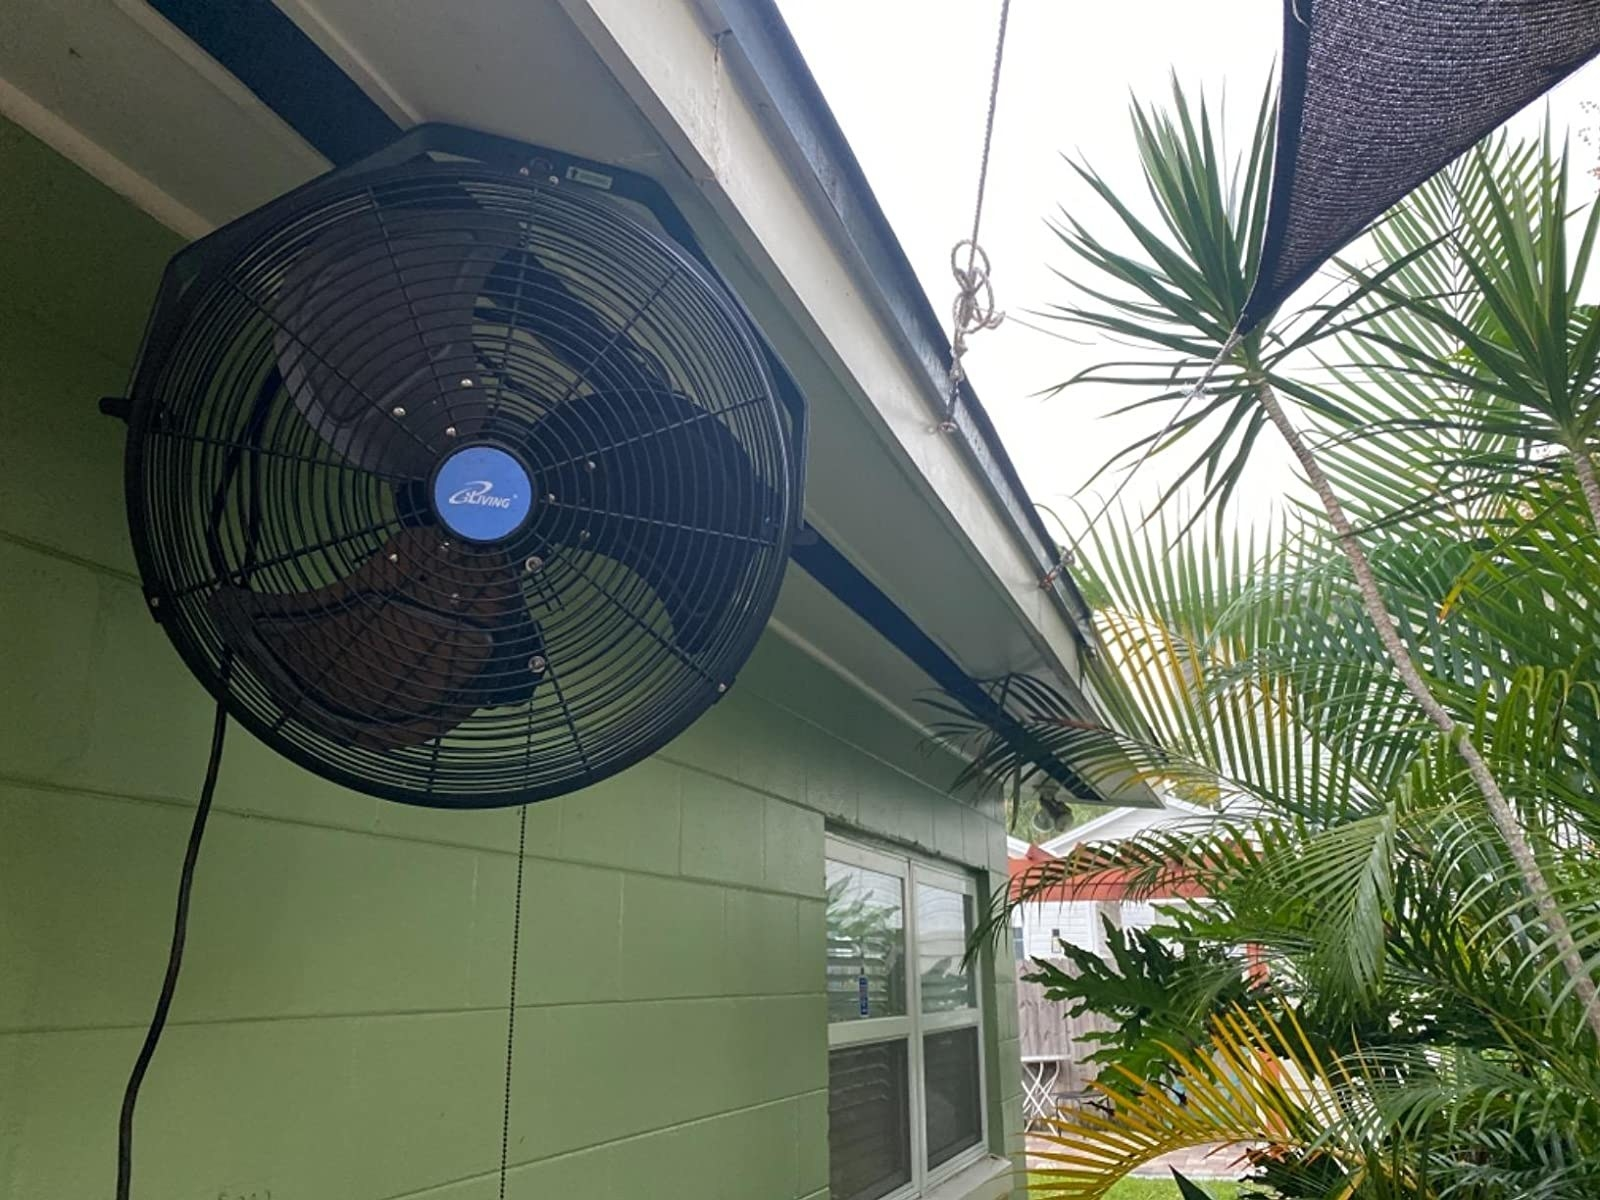 The fan hanging over a patio